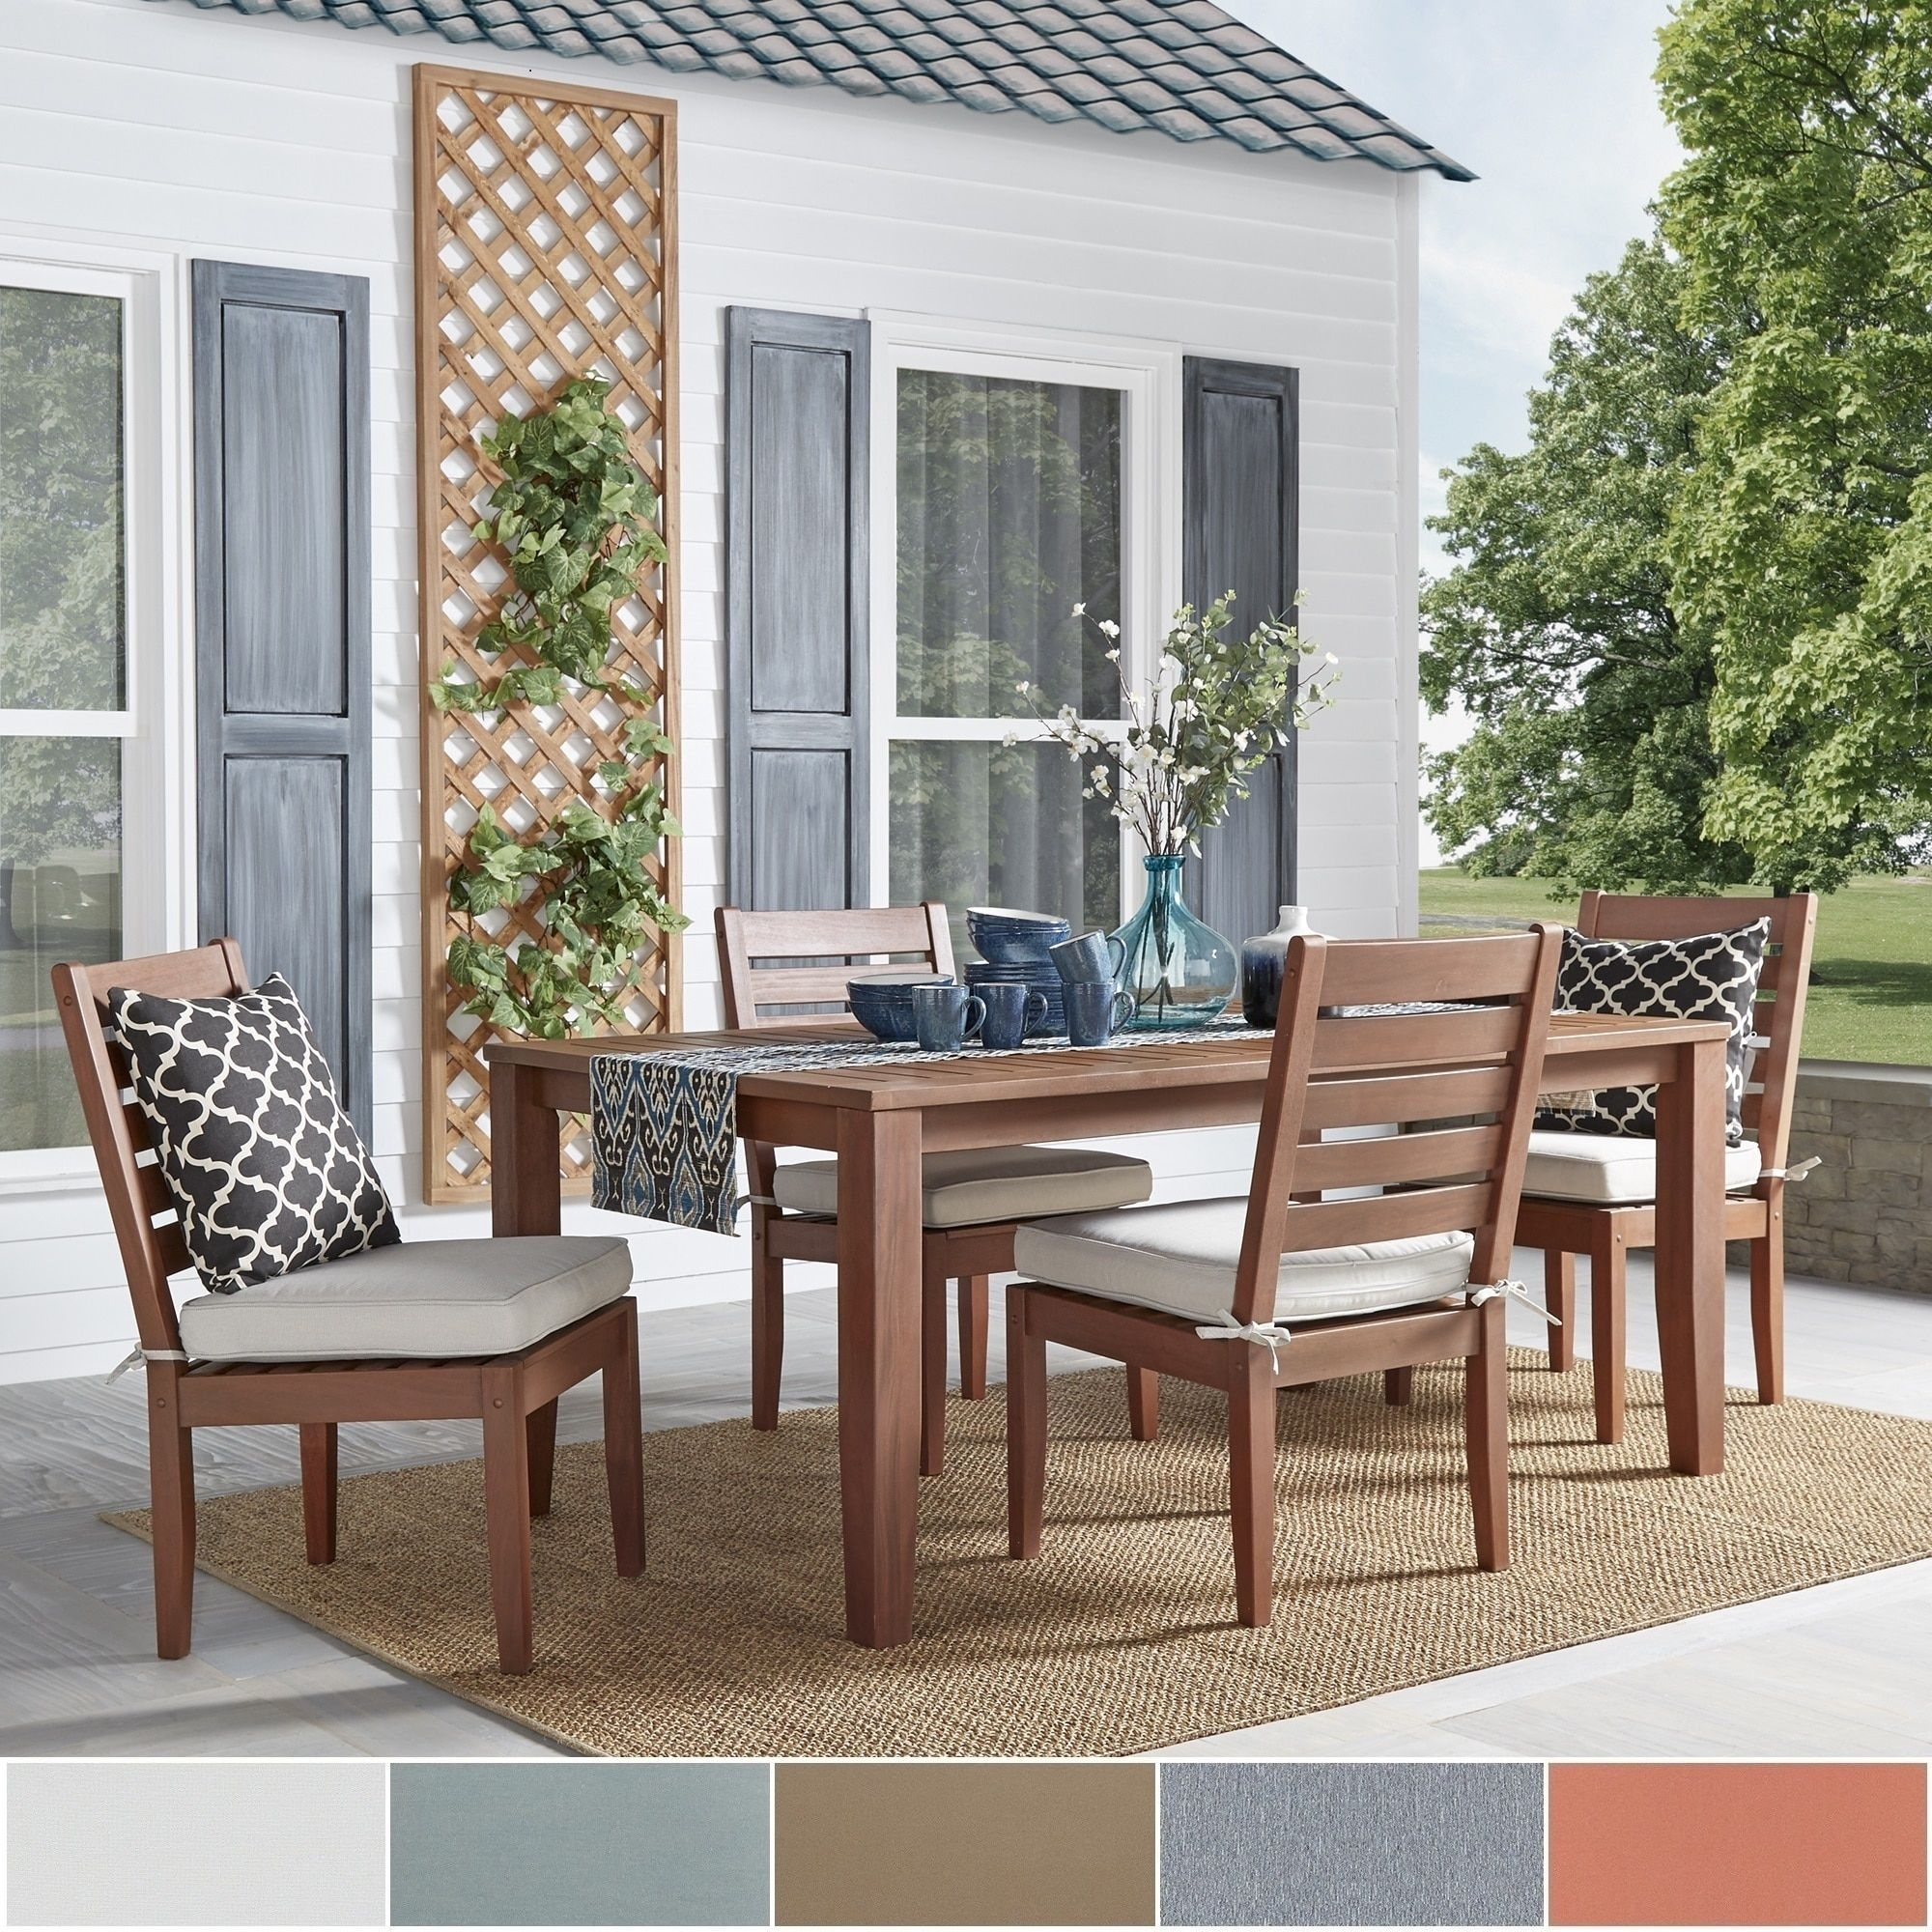 Yasawa Modern Wood Outdoor Rectangle 5 Piece Dining Set  Brown Intended For 2018 Craftsman 7 Piece Rectangle Extension Dining Sets With Arm & Side Chairs (Image 20 of 20)